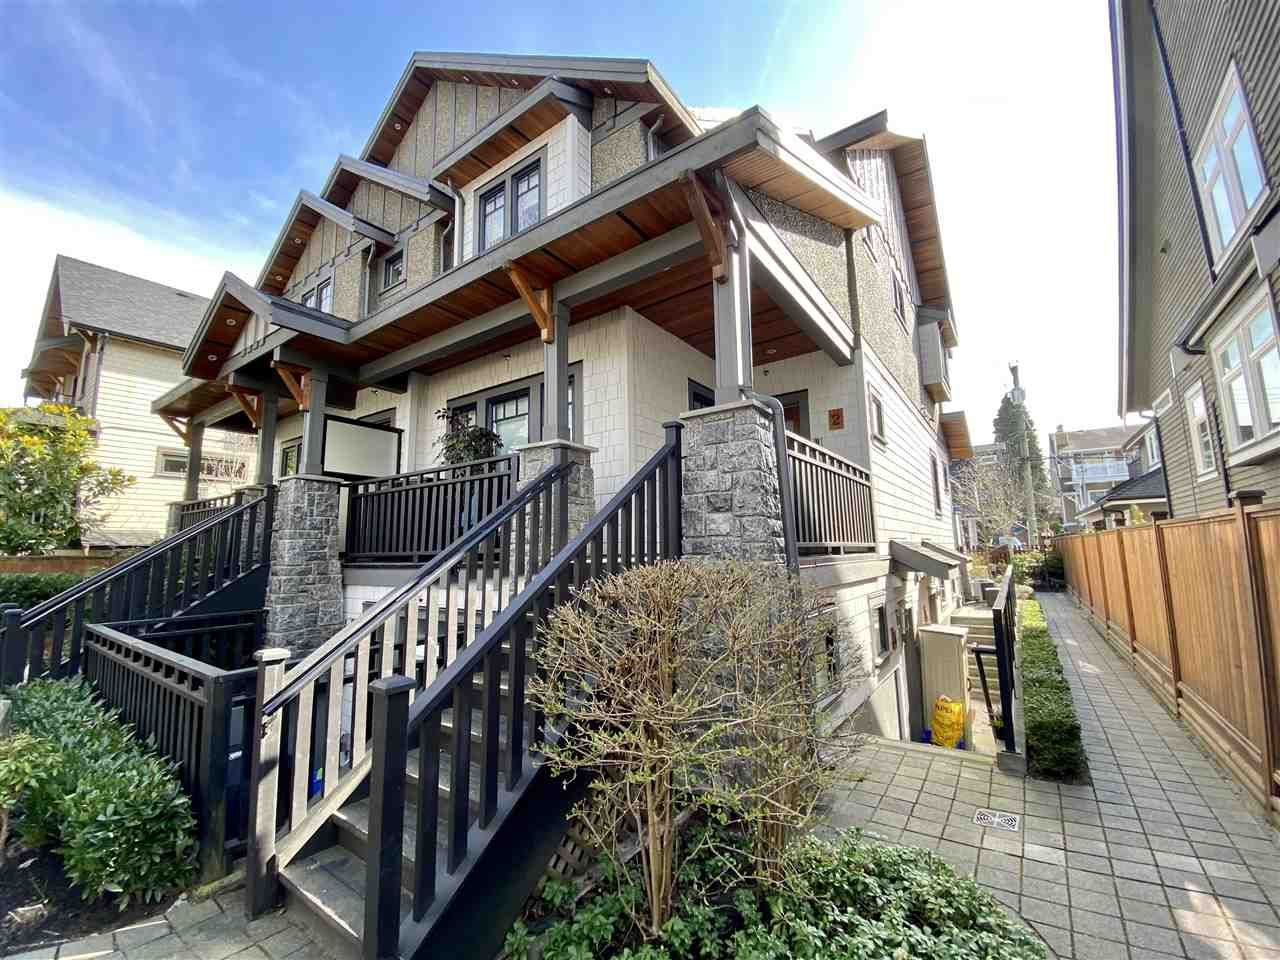 Main Photo: 4 138 W 13TH AVENUE in Vancouver: Mount Pleasant VW Townhouse for sale (Vancouver West)  : MLS®# R2547641